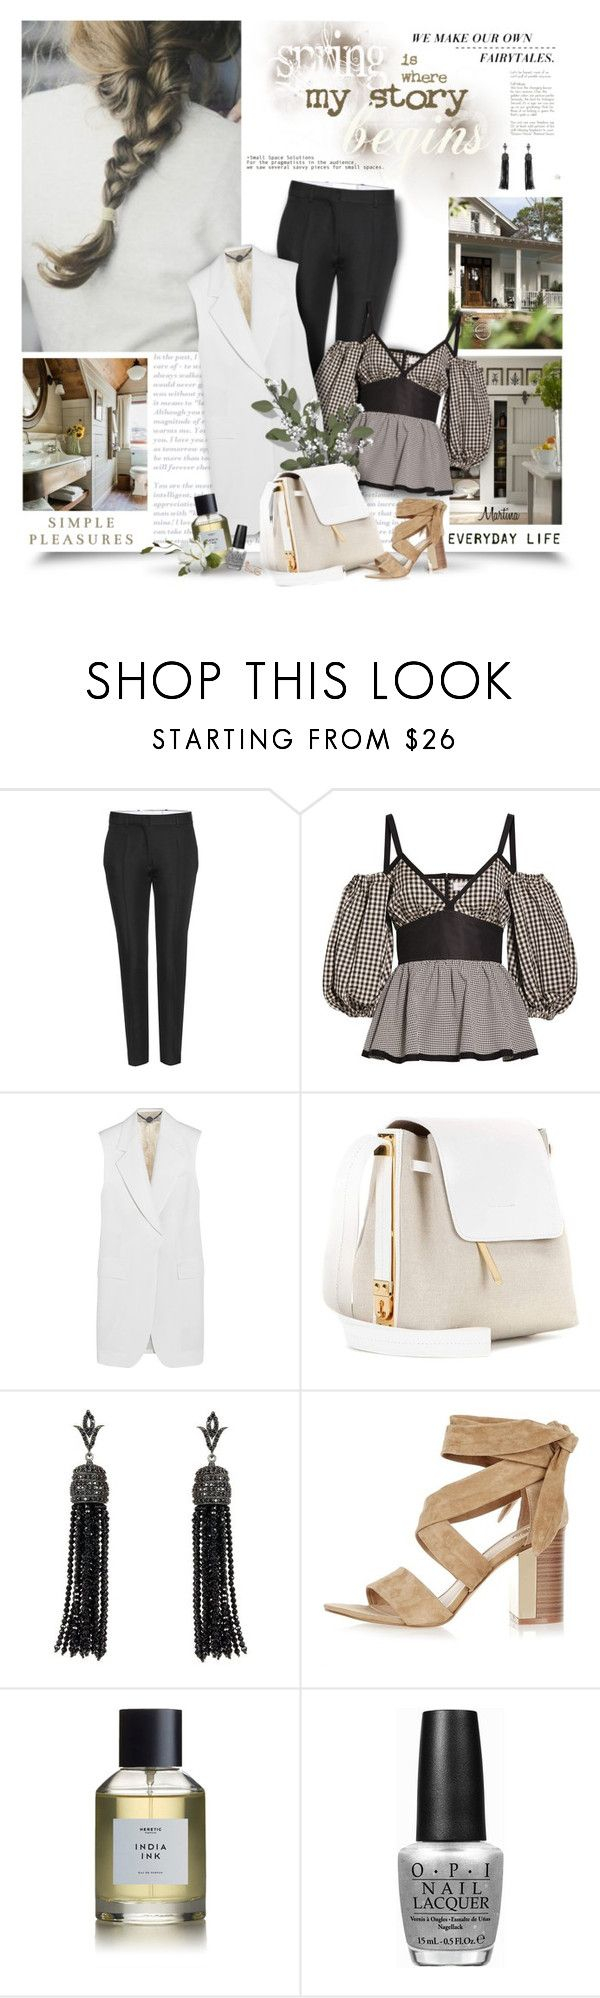 """""""Spring Is Where My Story Begins"""" by thewondersoffashion ❤ liked on Polyvore featuring Victoria Beckham, Isa Arfen, STELLA McCARTNEY, Sophie Hulme, ADORNIA, River Island, Heretic Parfum, OPI, Topshop and RiverIsland"""